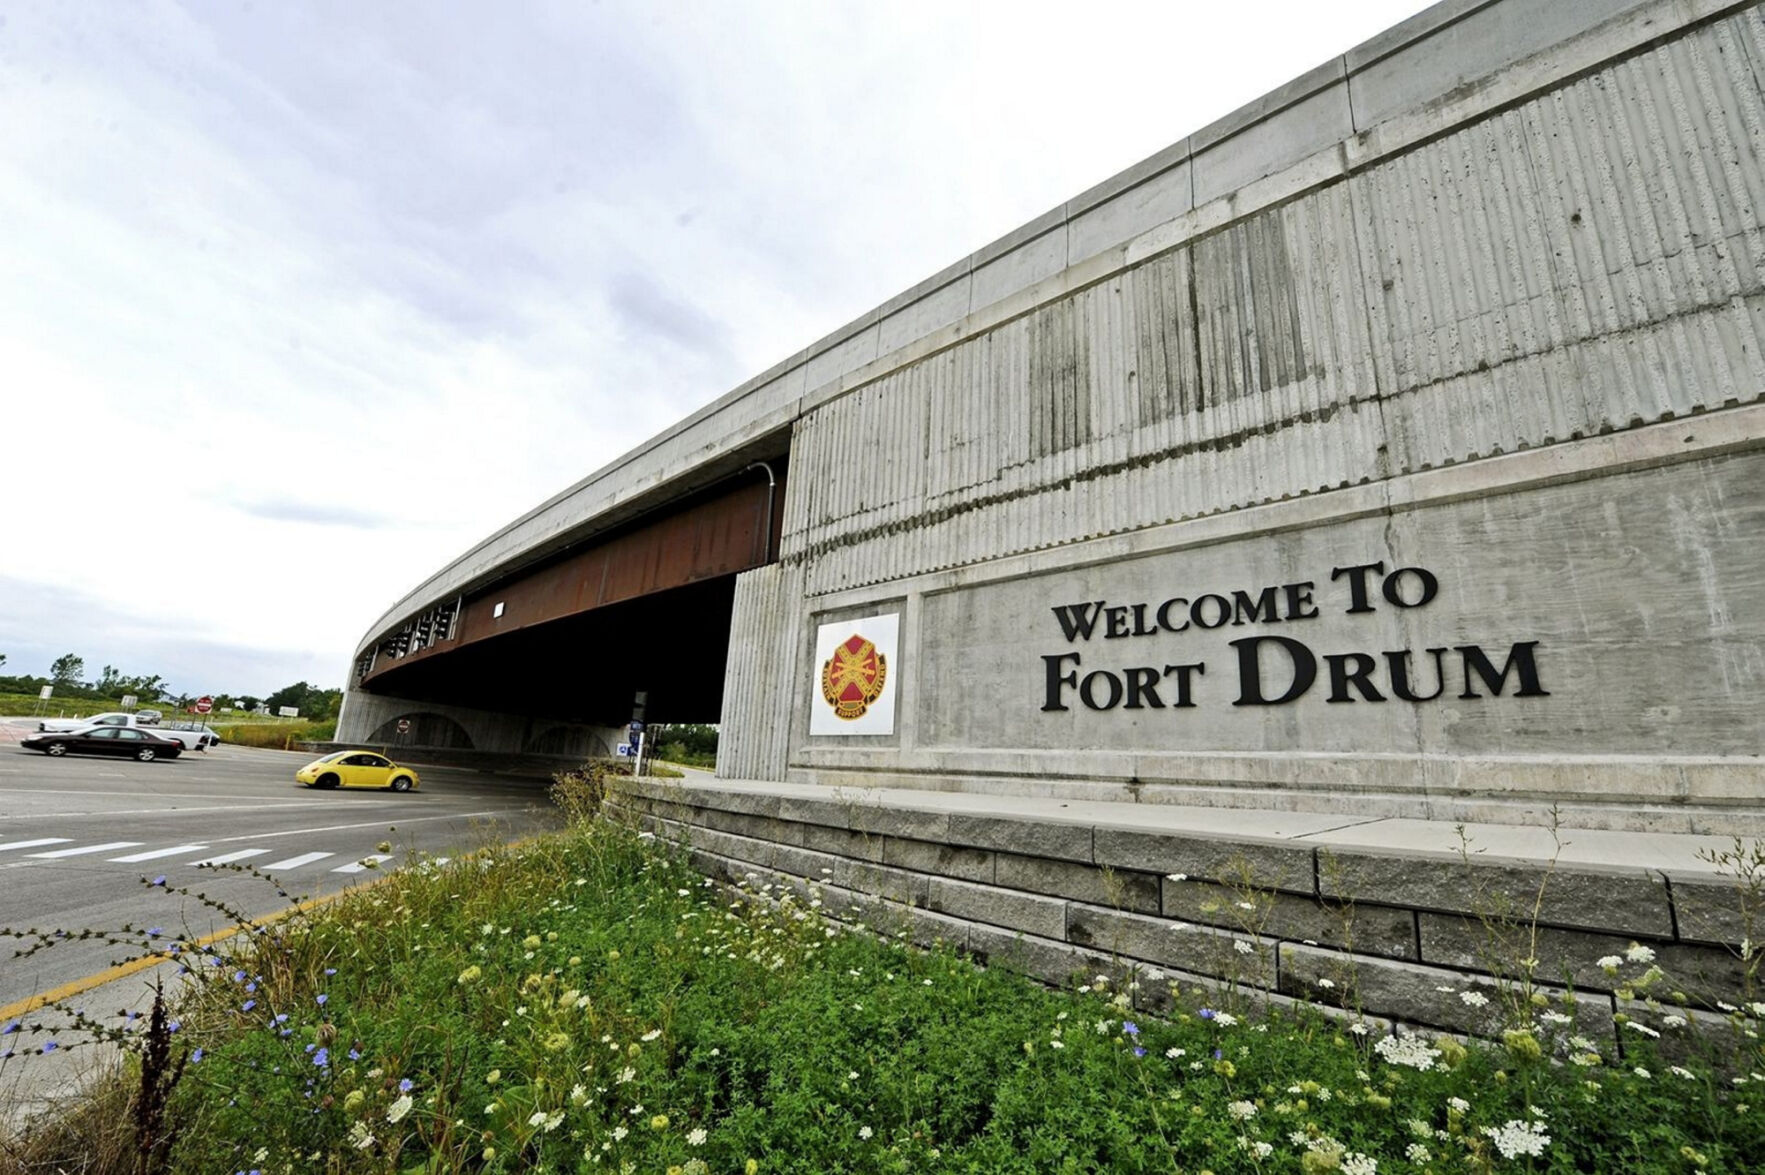 Advocate Drum continues its work despite losing $300,000 grant and executive director